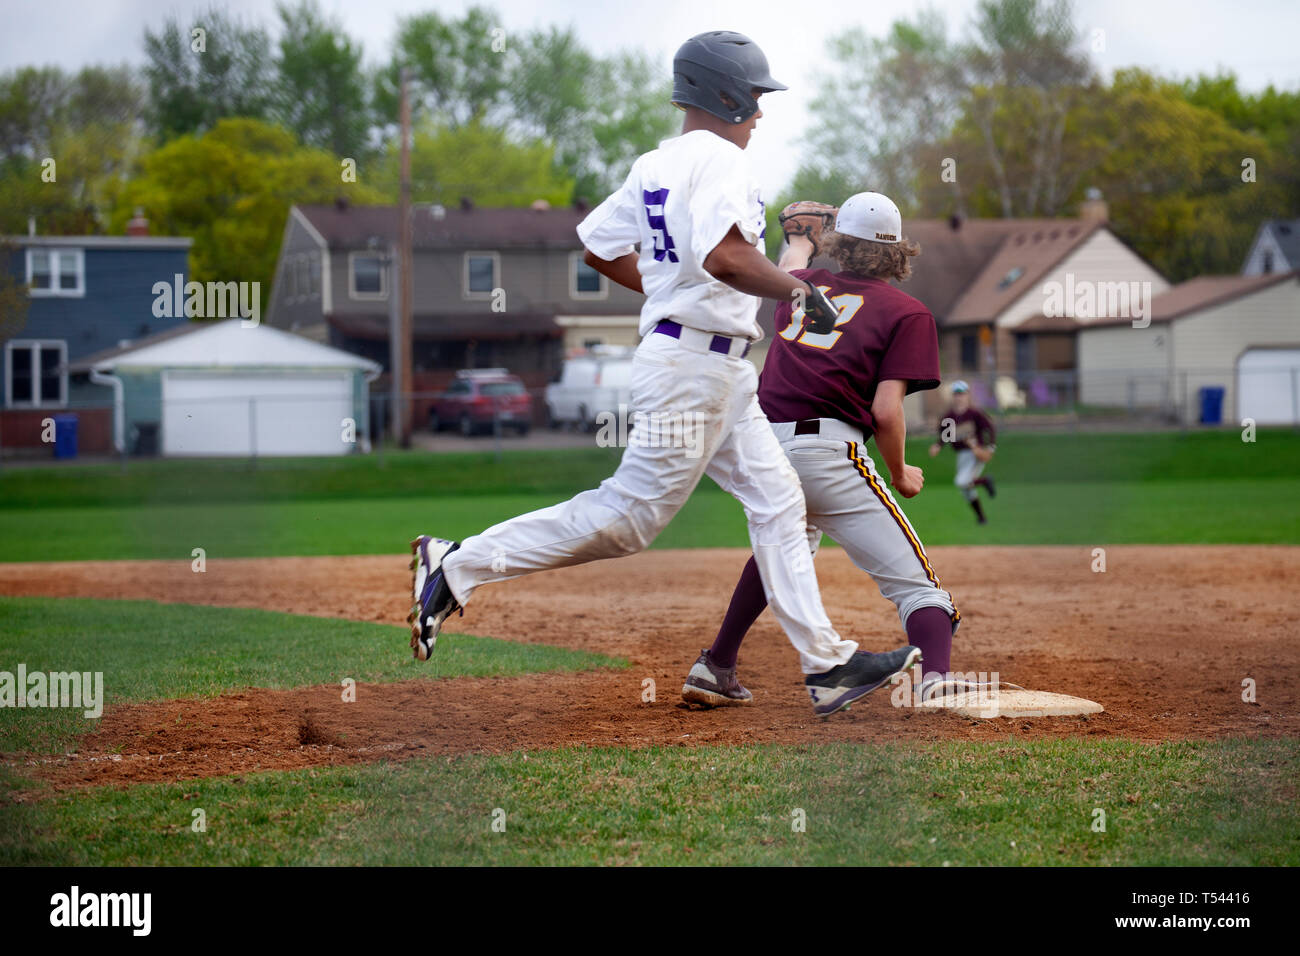 Is he safe or out, as runner tries to beat the throw to first base at Cretin-Derham Hall school home baseball Field? St Paul Minnesota MN USA - Stock Image